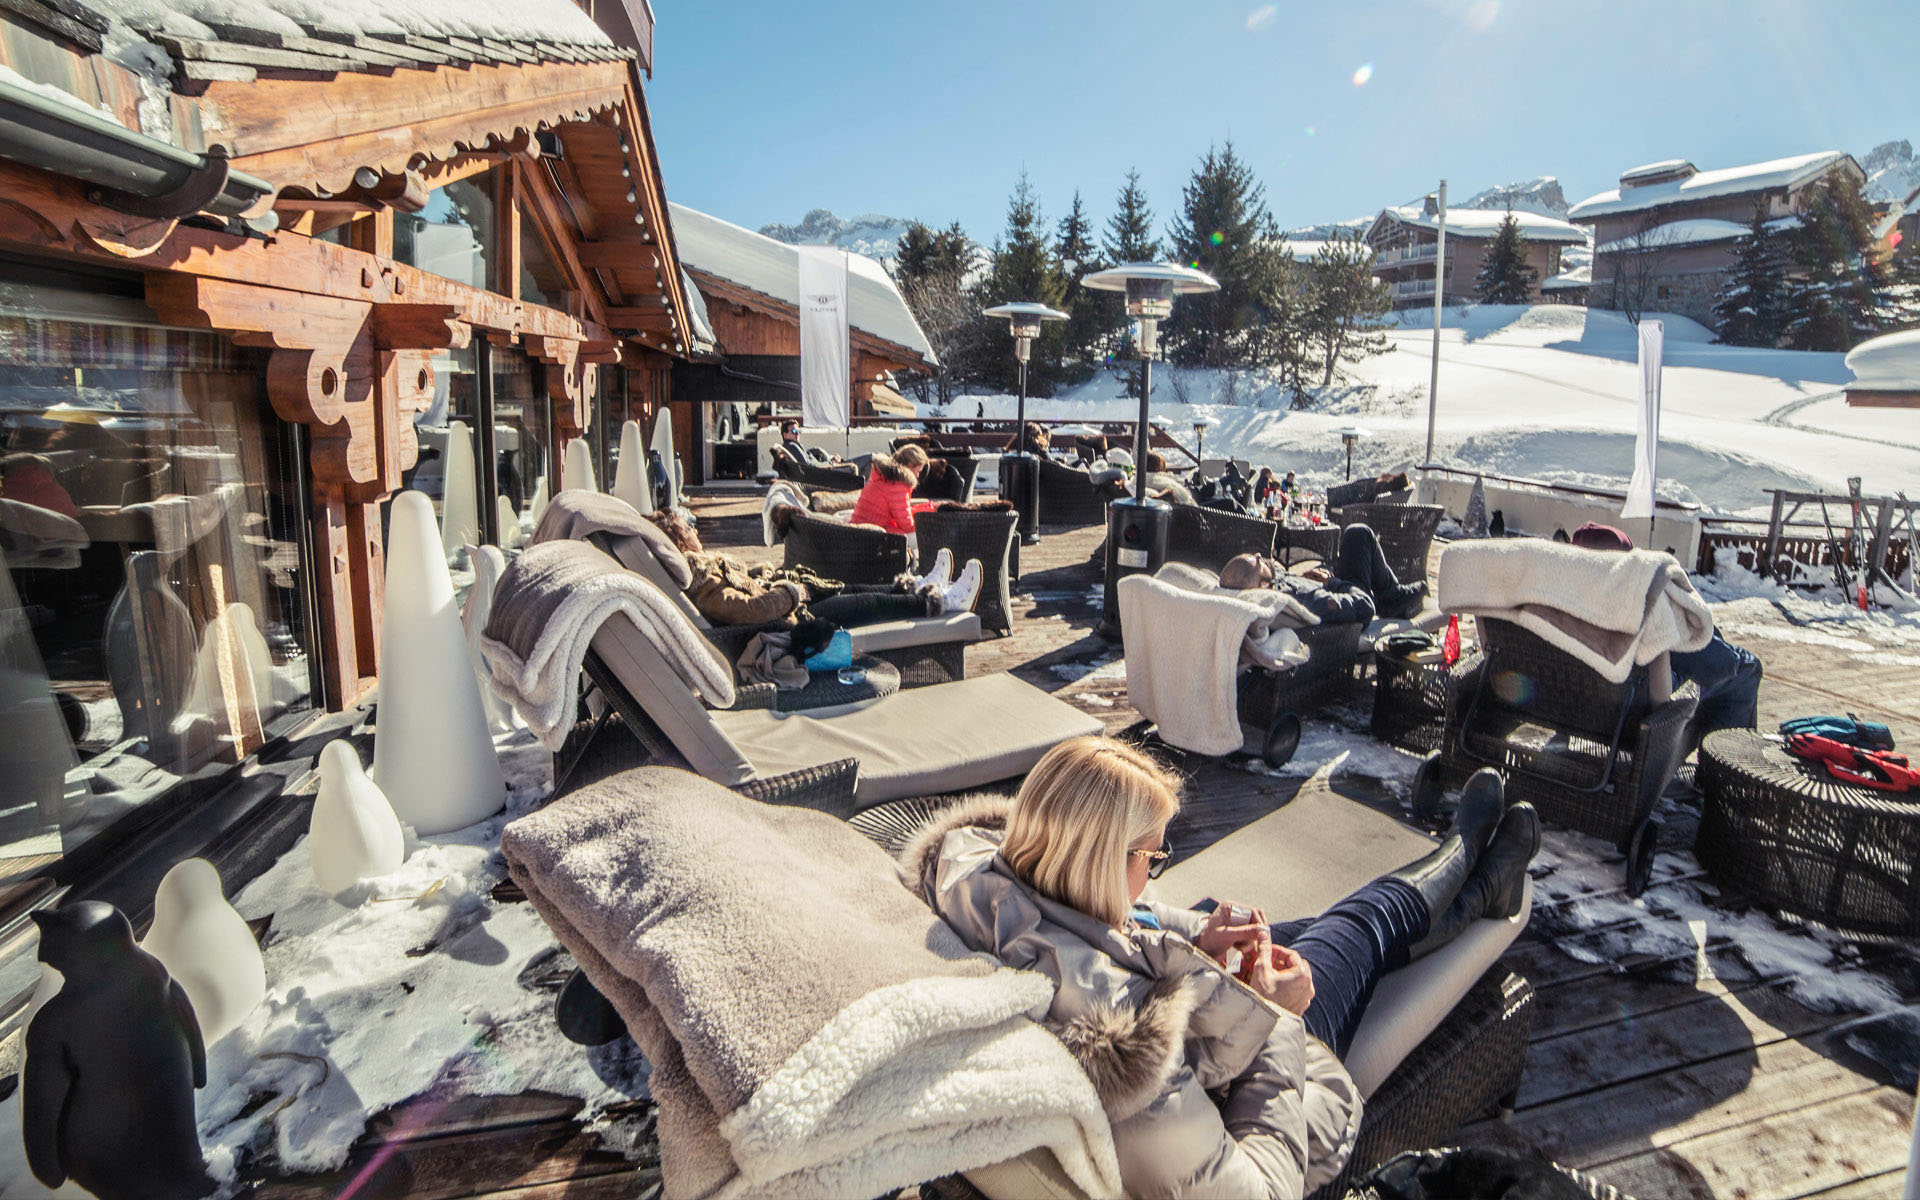 alpes hotel pralong bar courchevel